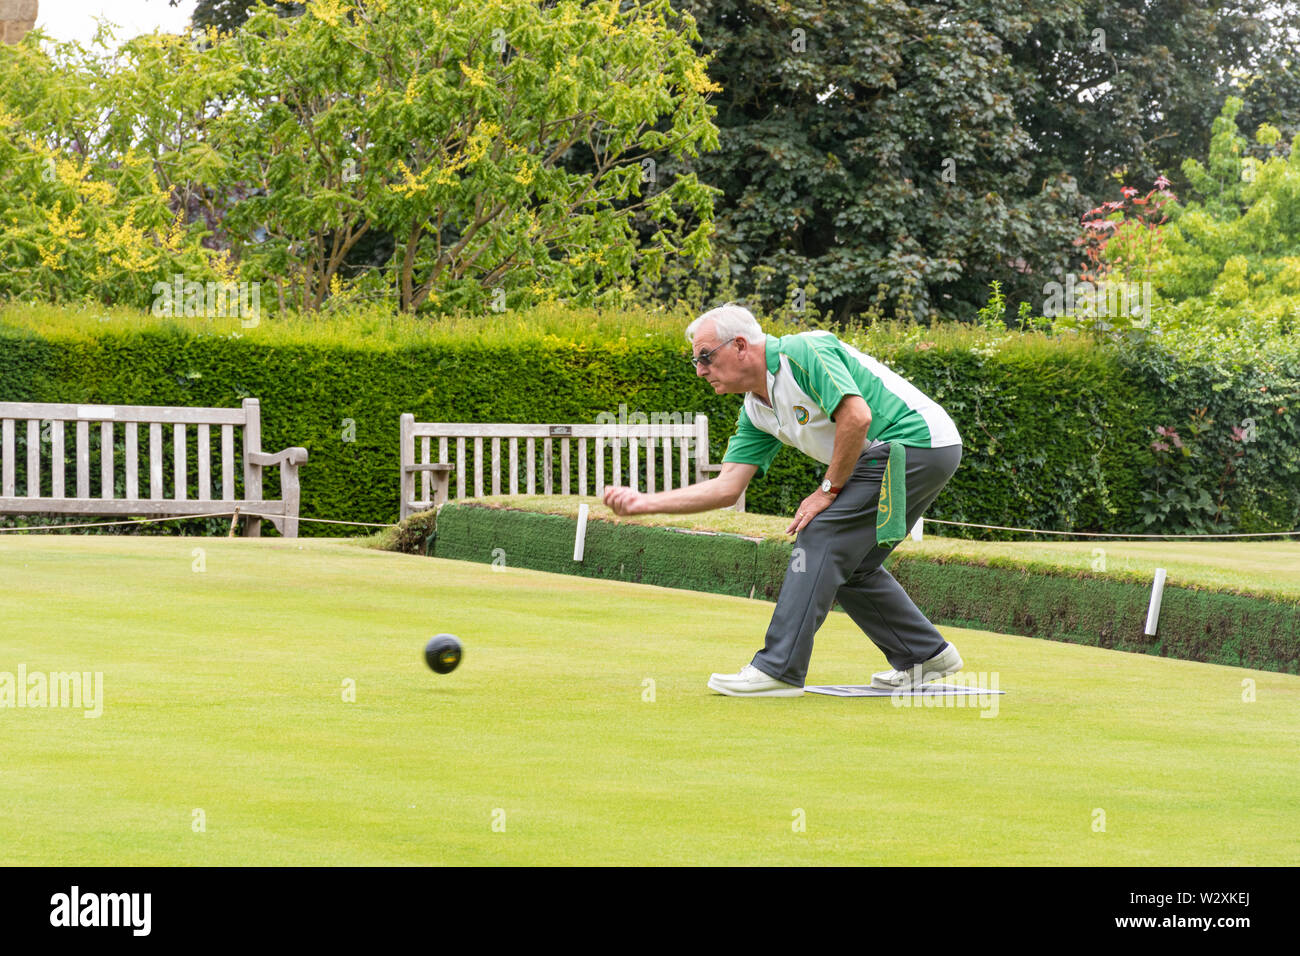 senior-man-playing-lawn-bowls-older-person-bowling-uk-W2XKEJ.jpg